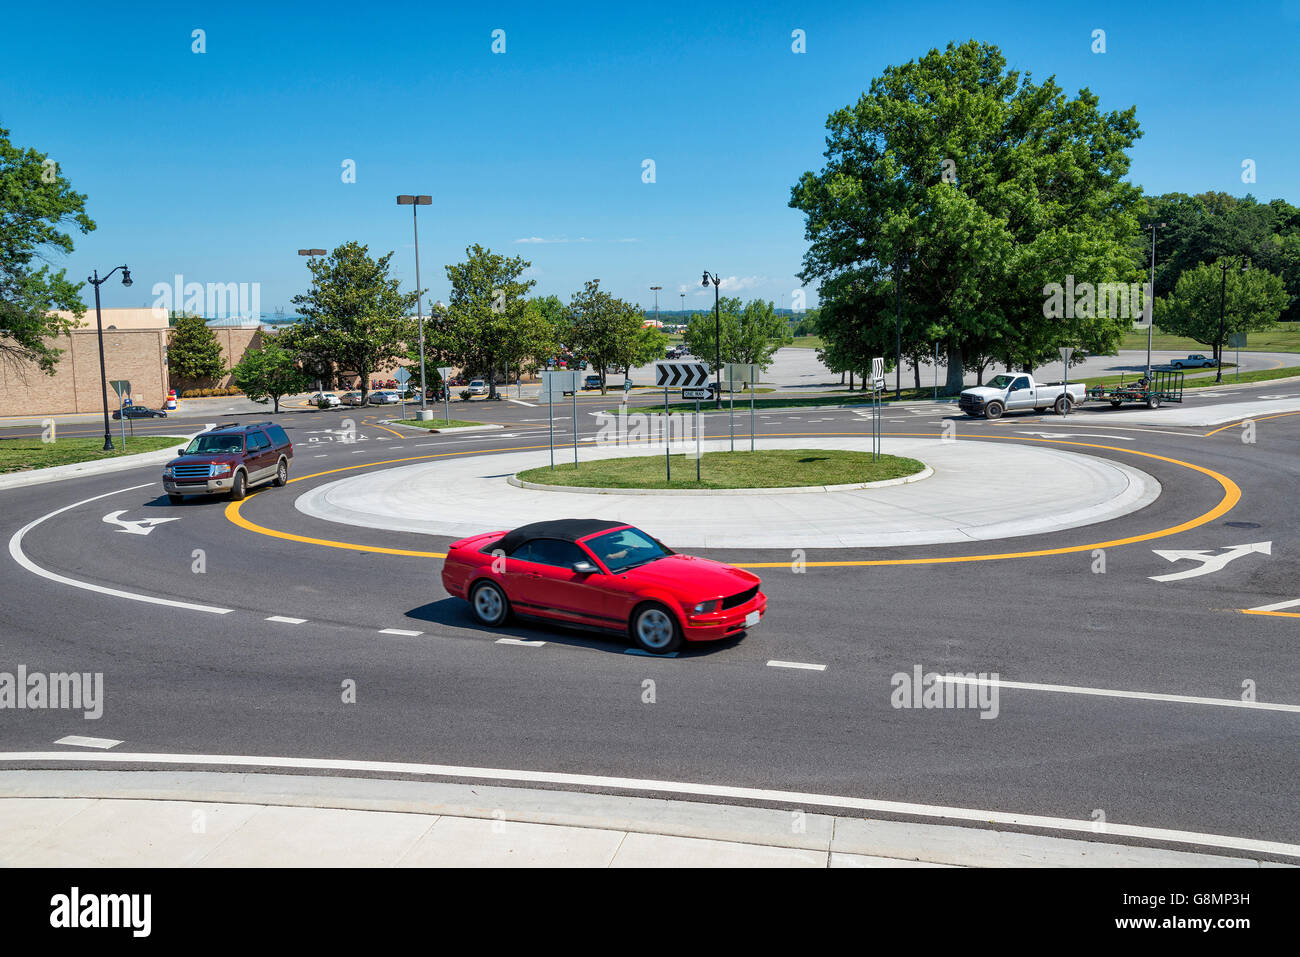 Traffic roundabout with vehicles going around it.  Horizontal shot - Stock Image